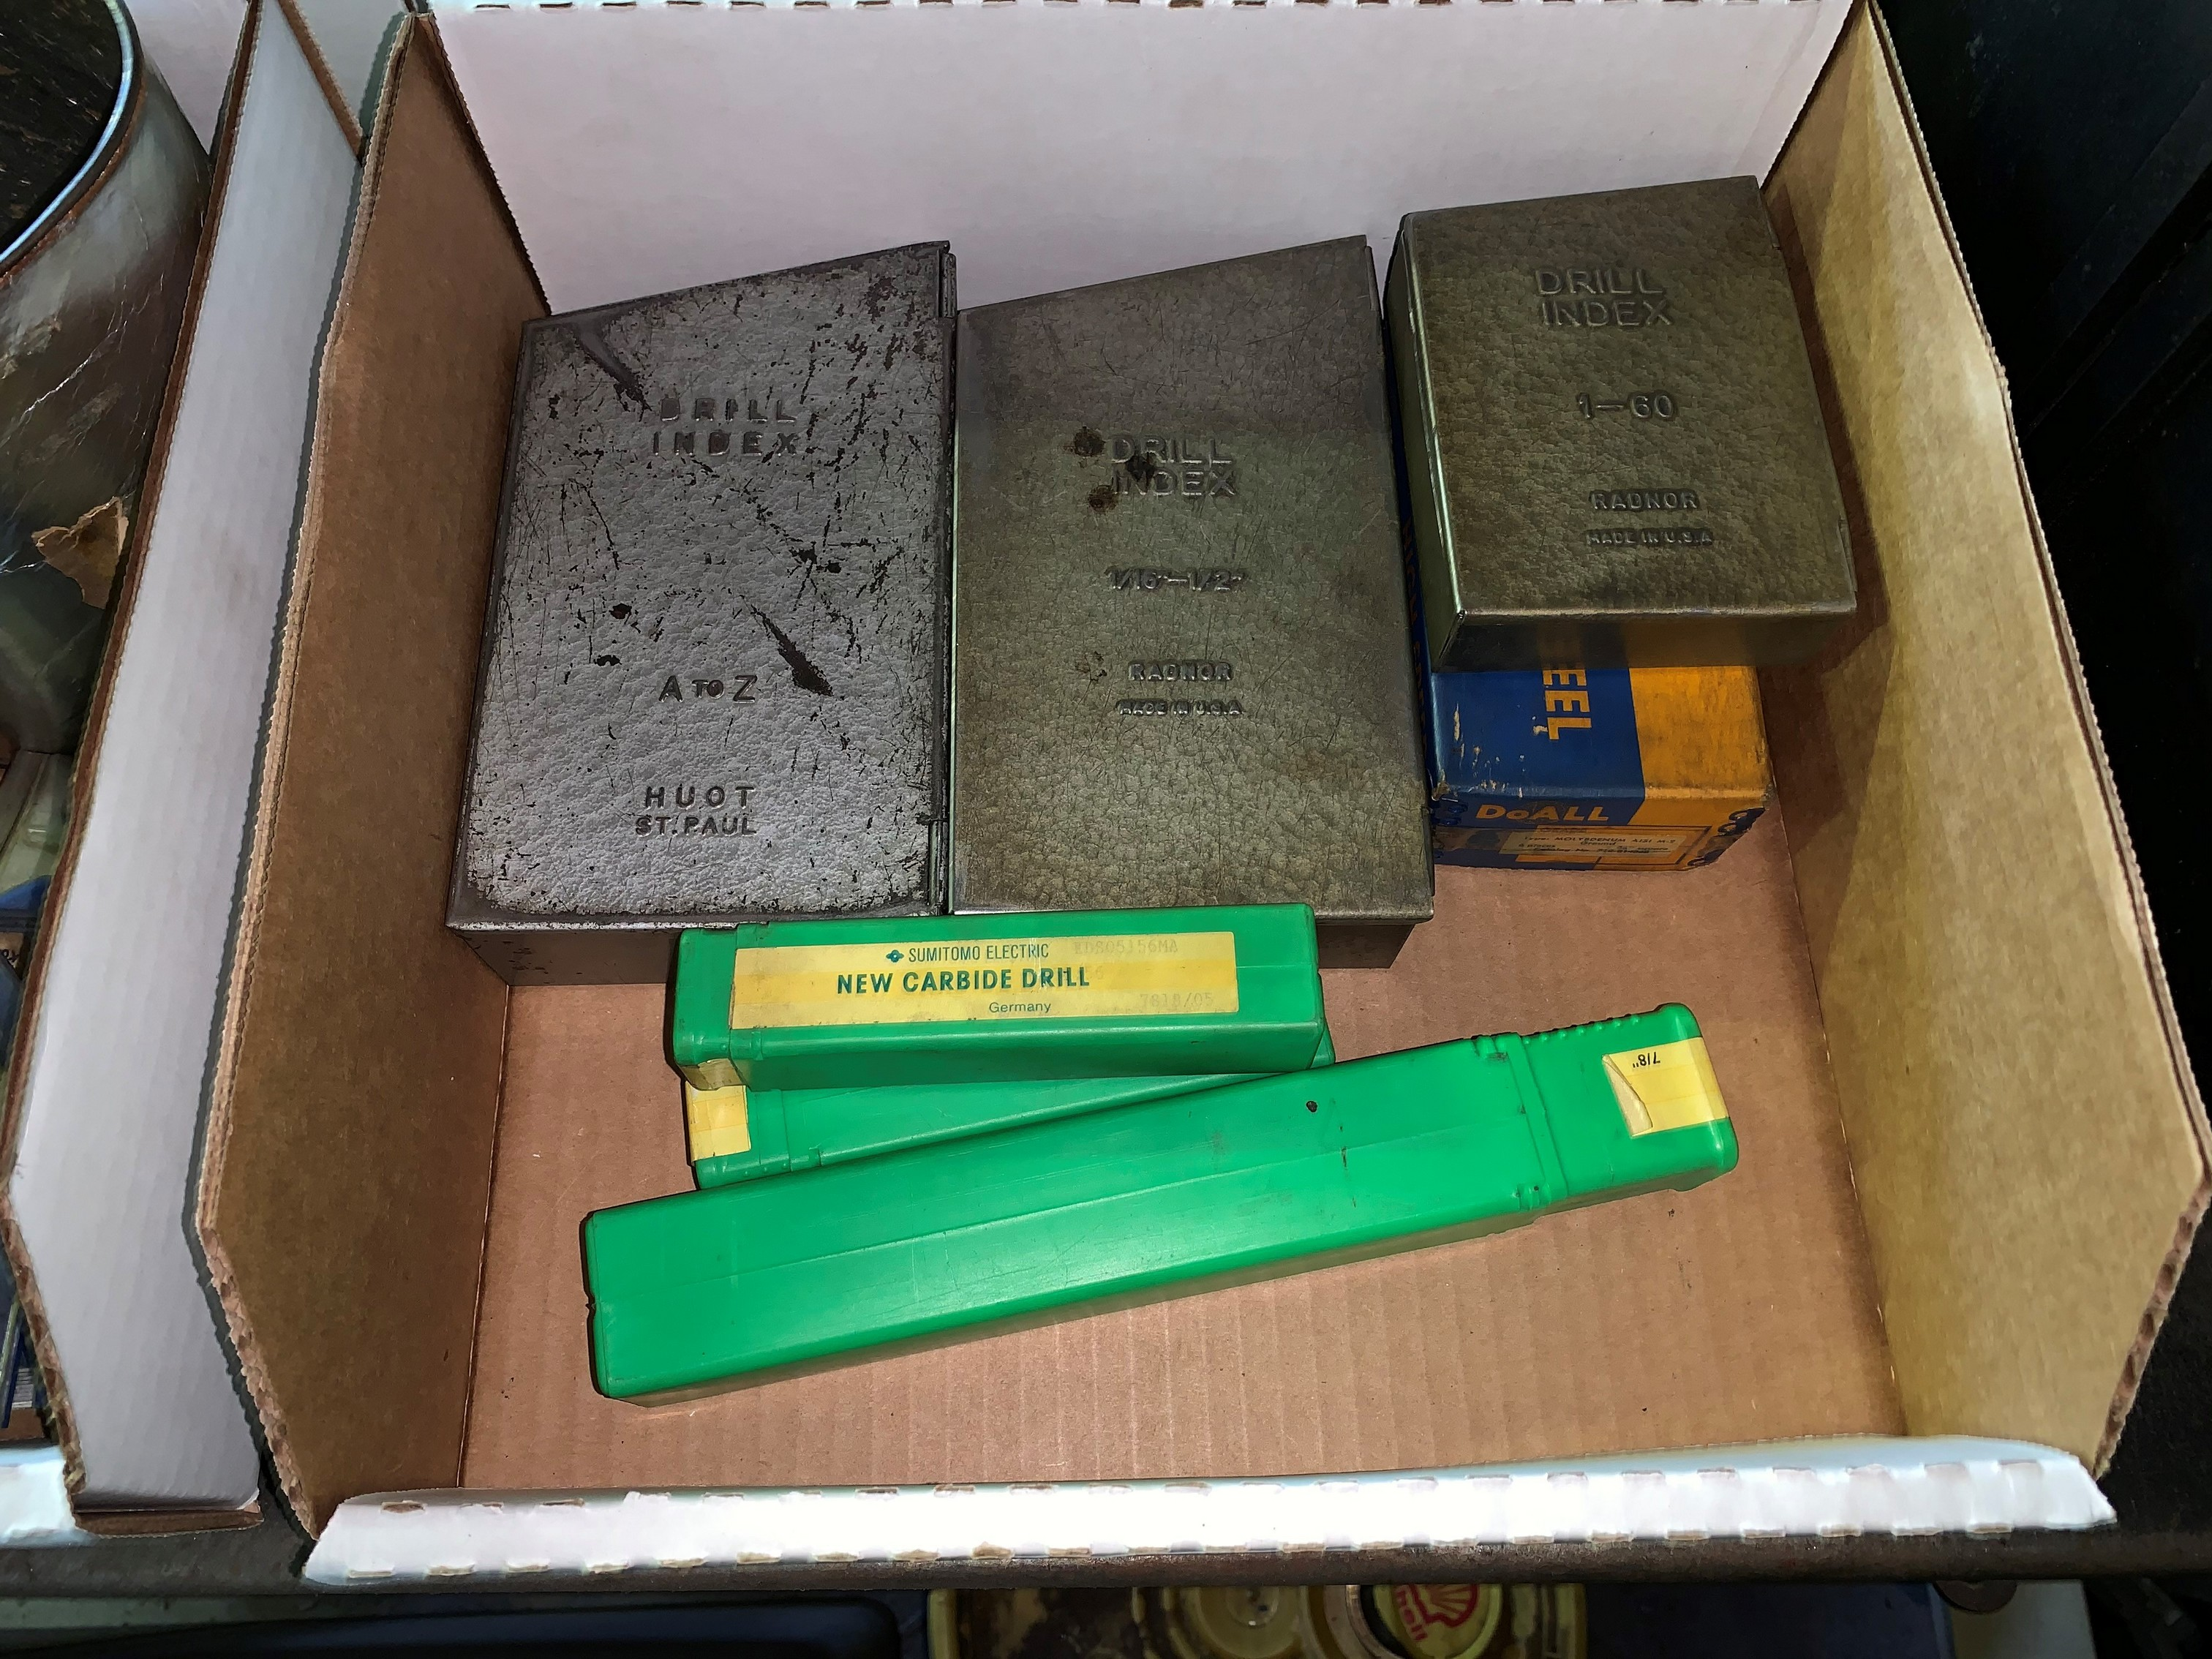 Lot with (3) Sets of Drill Indexes along with Drill Bits (Located in Levittown, PA Facility)